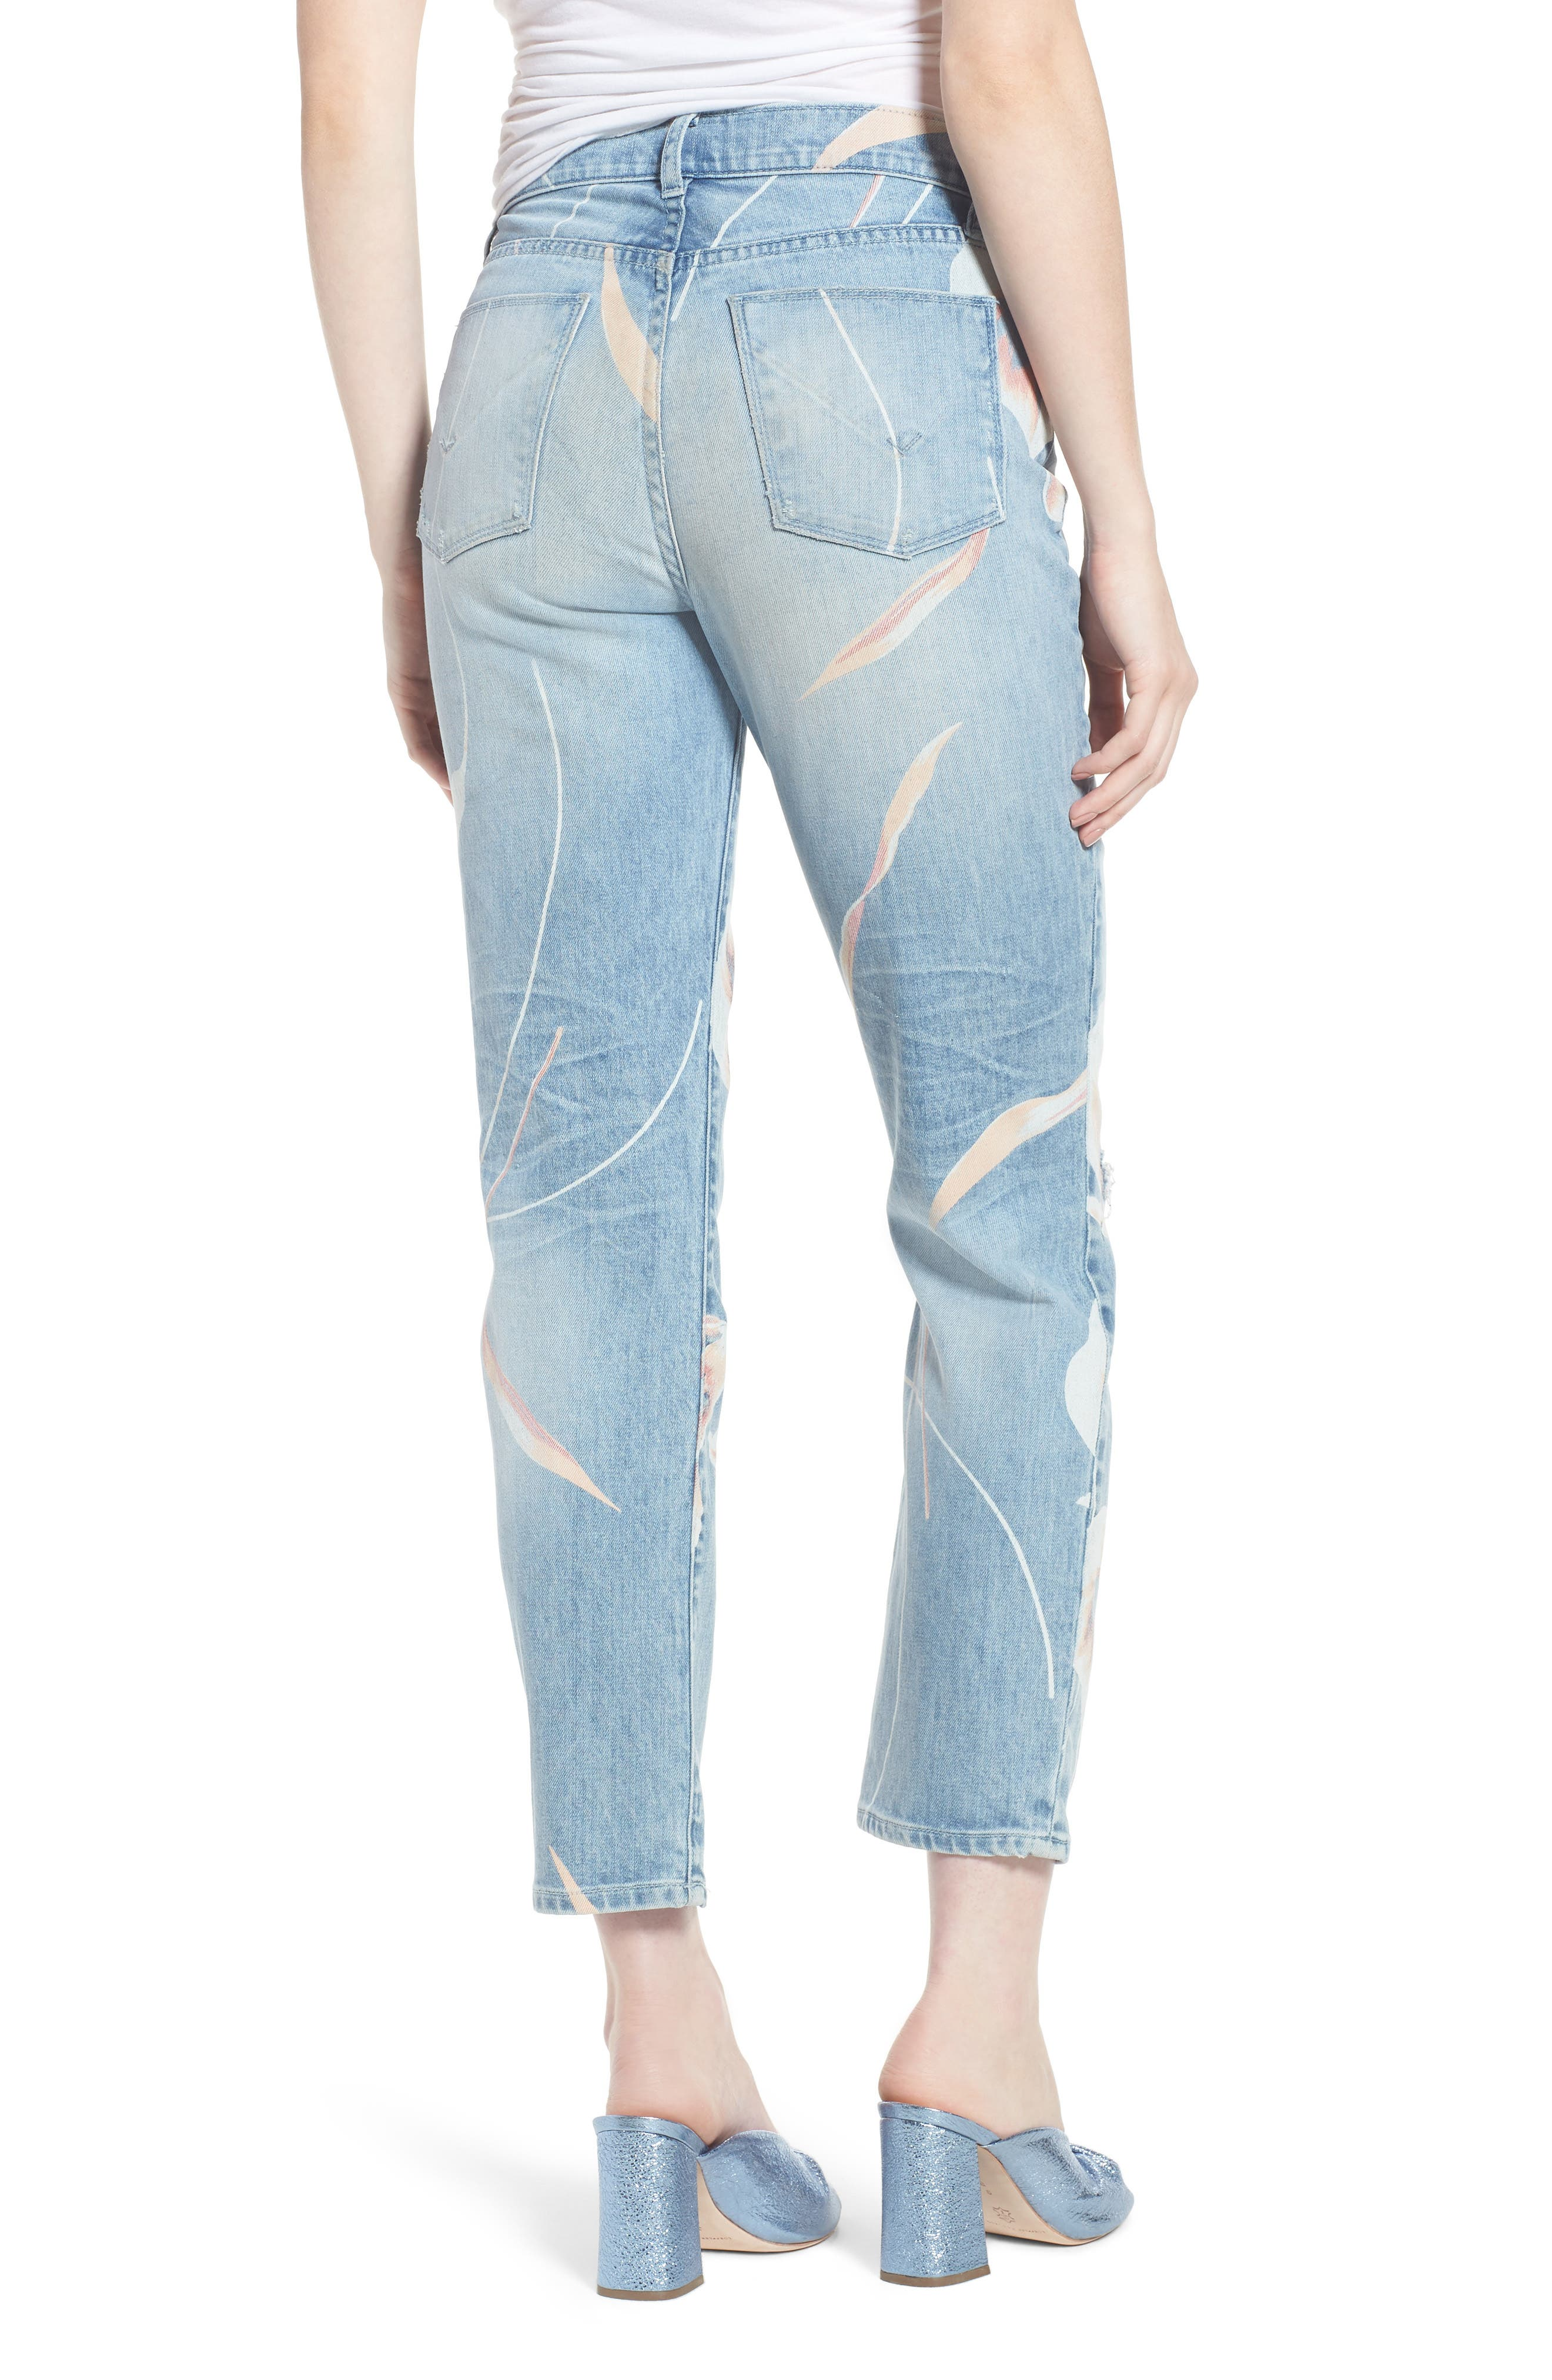 Zoeey High Waist Ankle Straight Leg Jeans,                             Alternate thumbnail 2, color,                             In Bloom